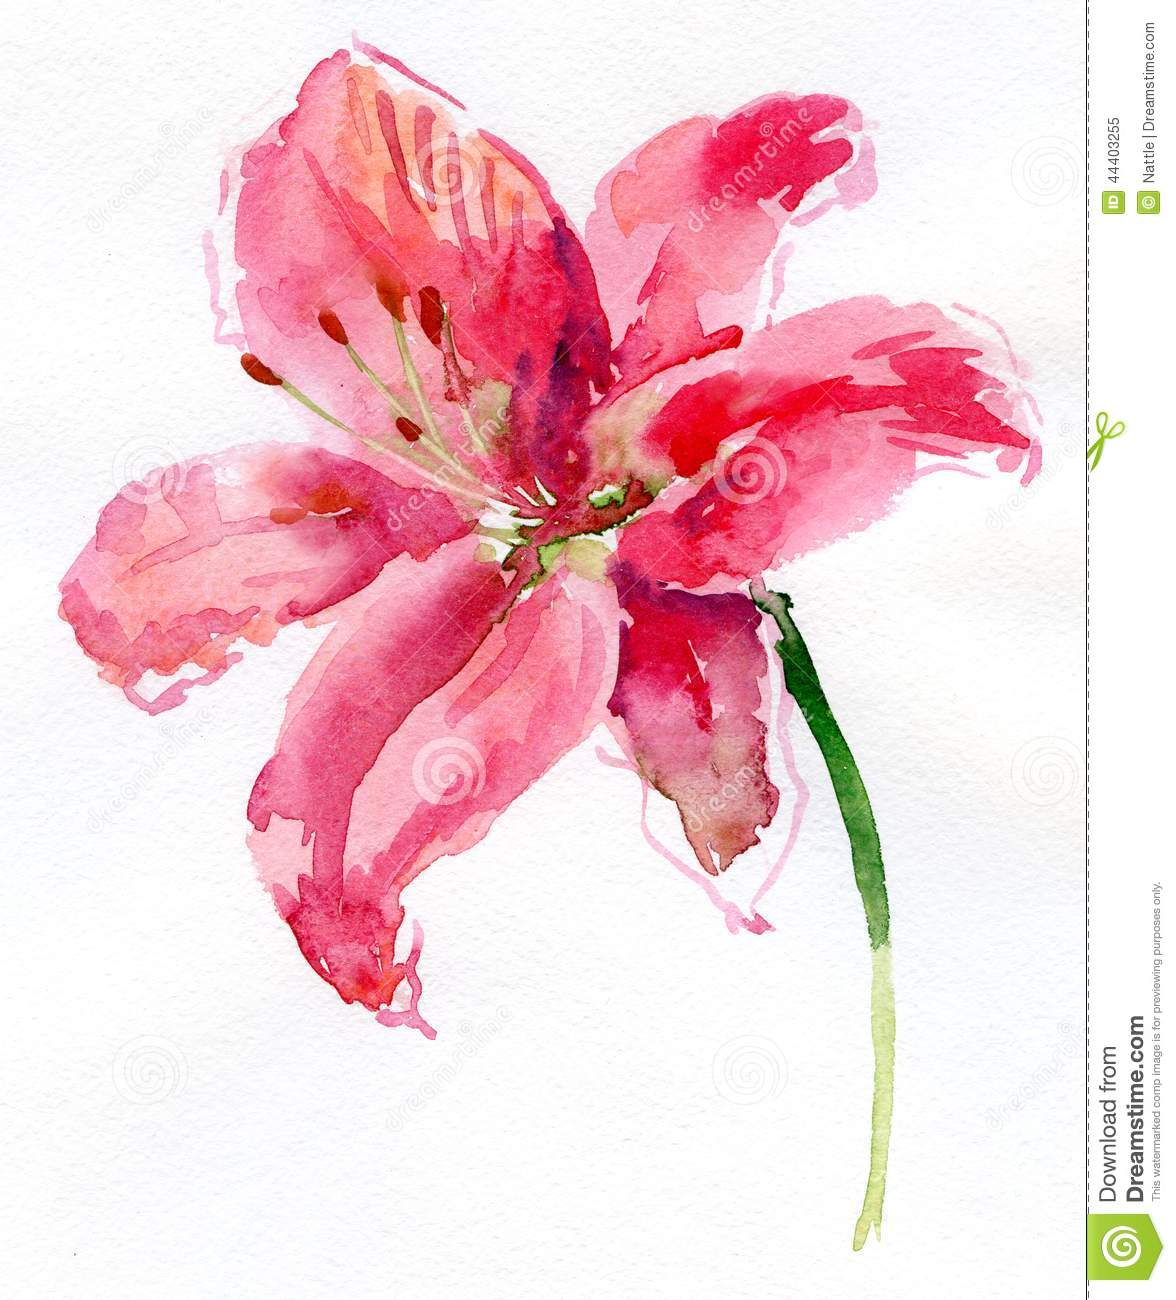 Pink lily flower transparent image the cliparts - Background Flower Isolated Lily